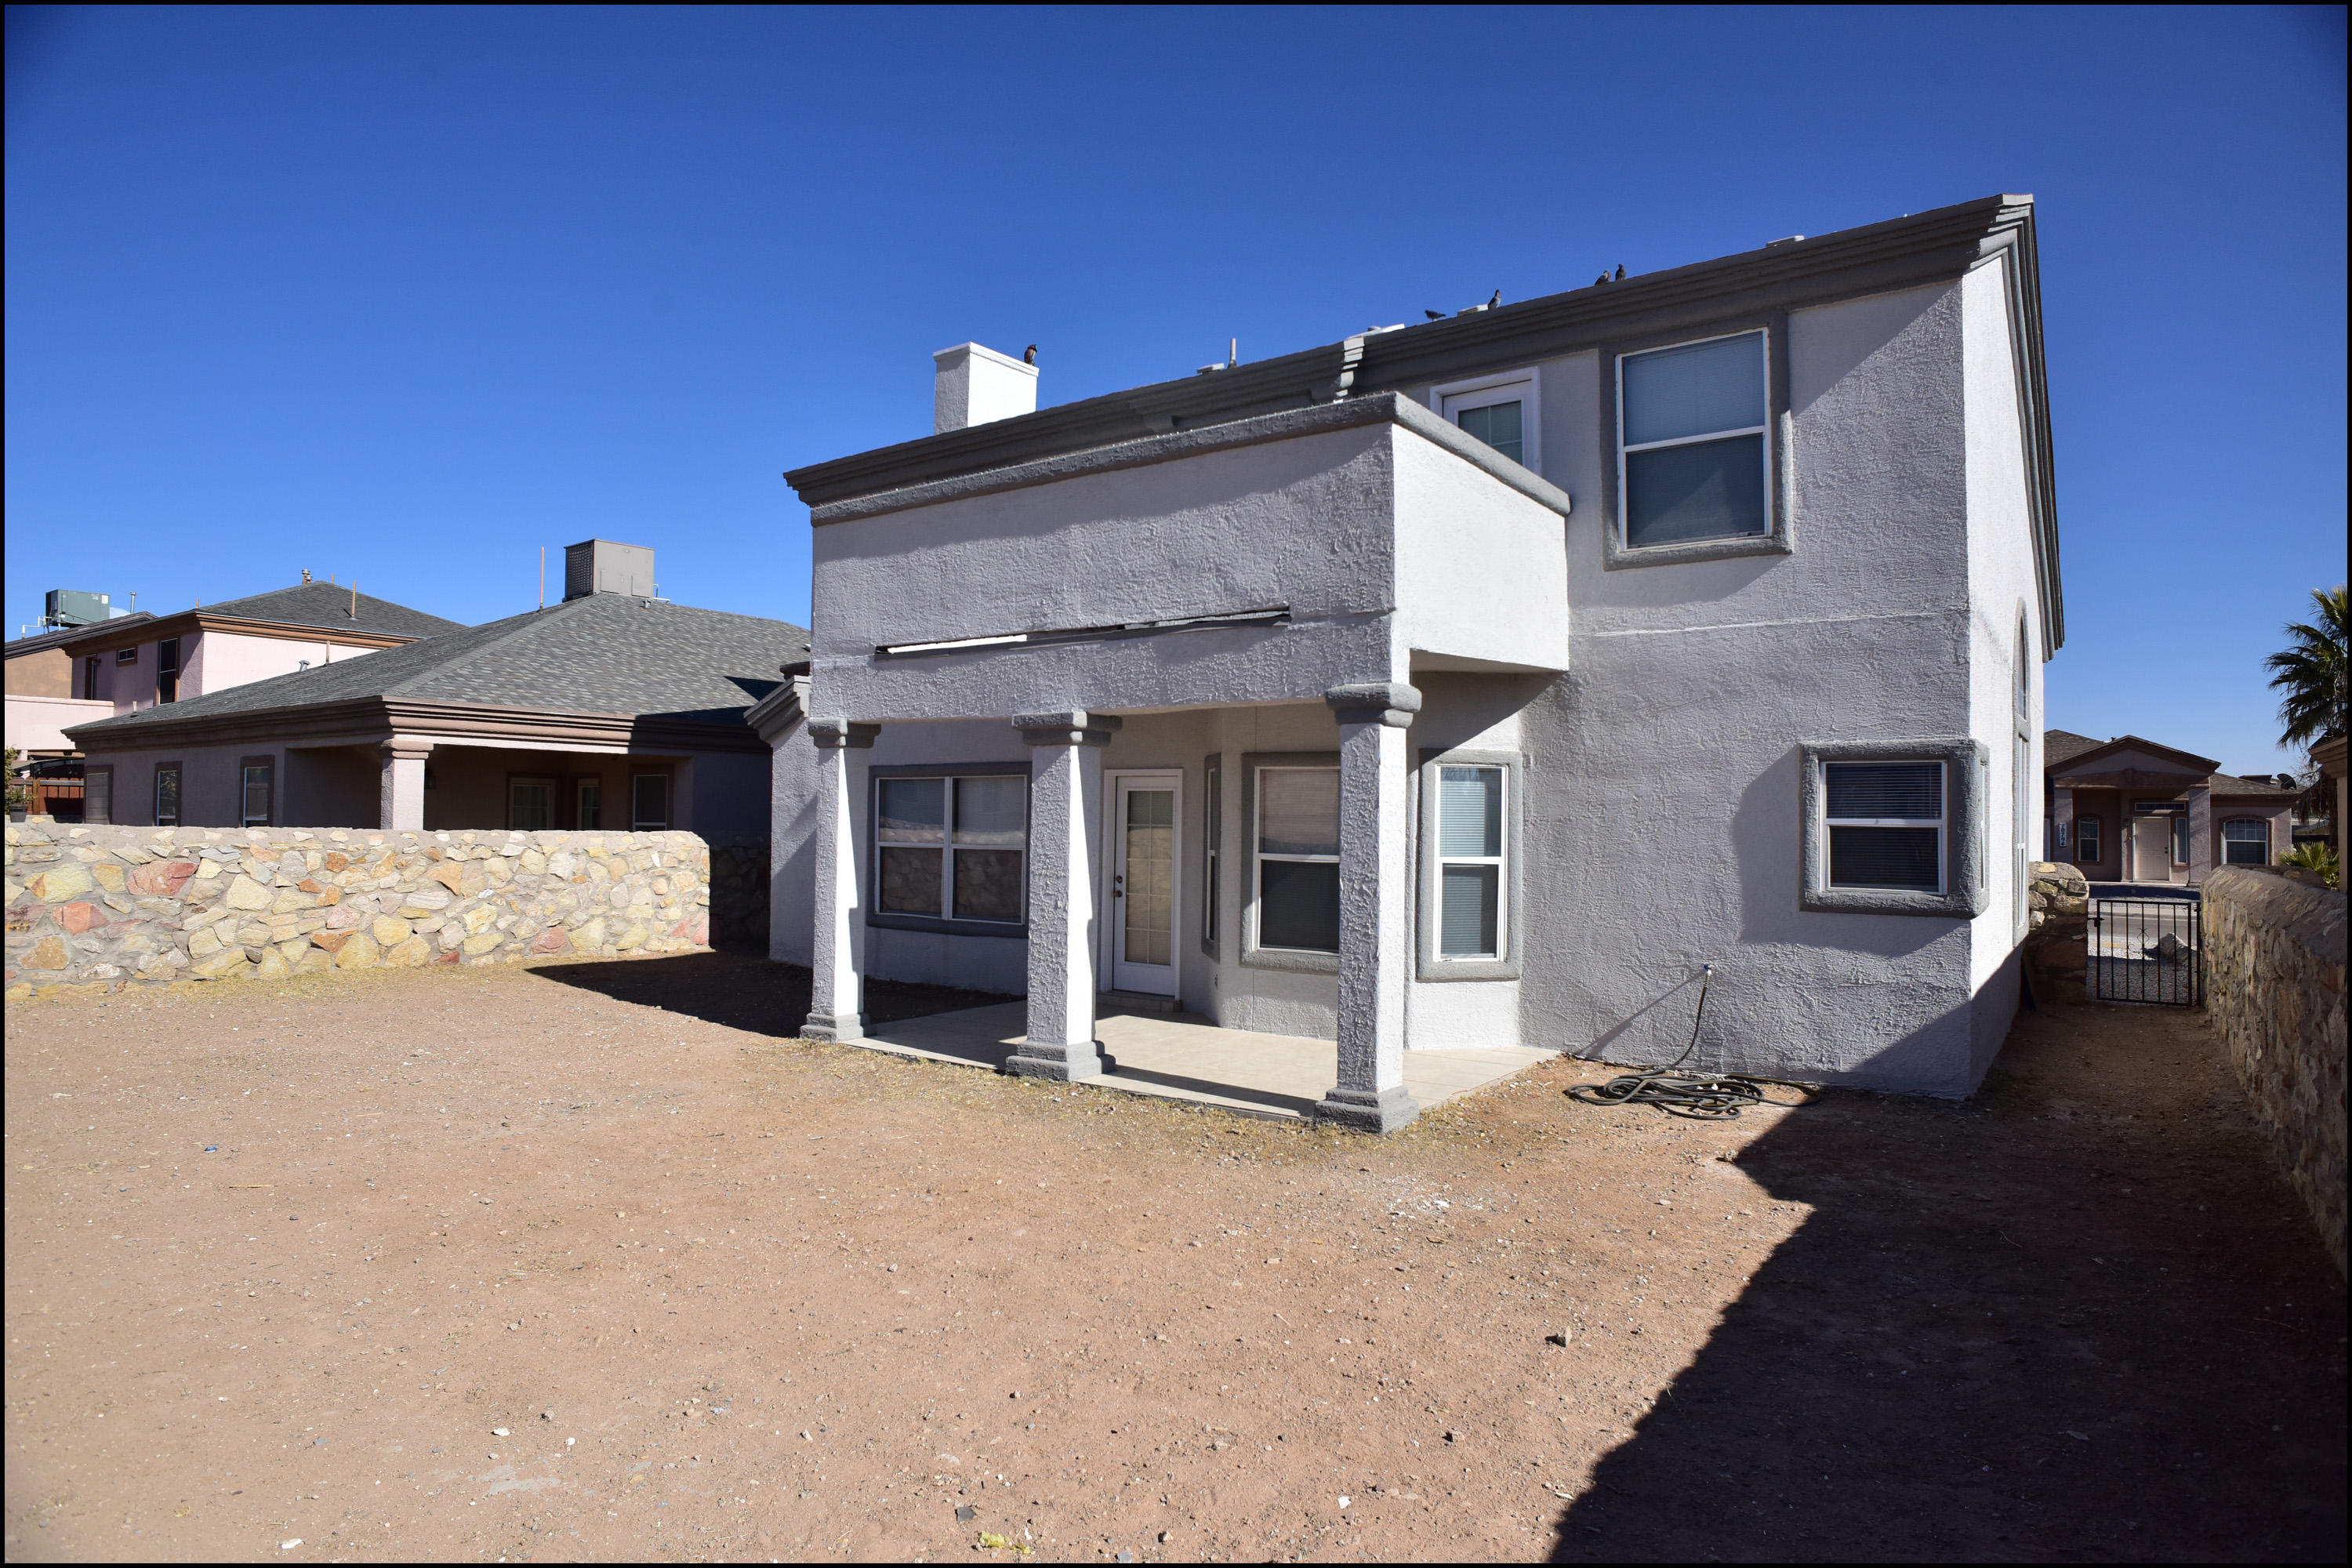 10799 AARON, El Paso, Texas 79924, 3 Bedrooms Bedrooms, ,3 BathroomsBathrooms,Residential,For sale,AARON,839495